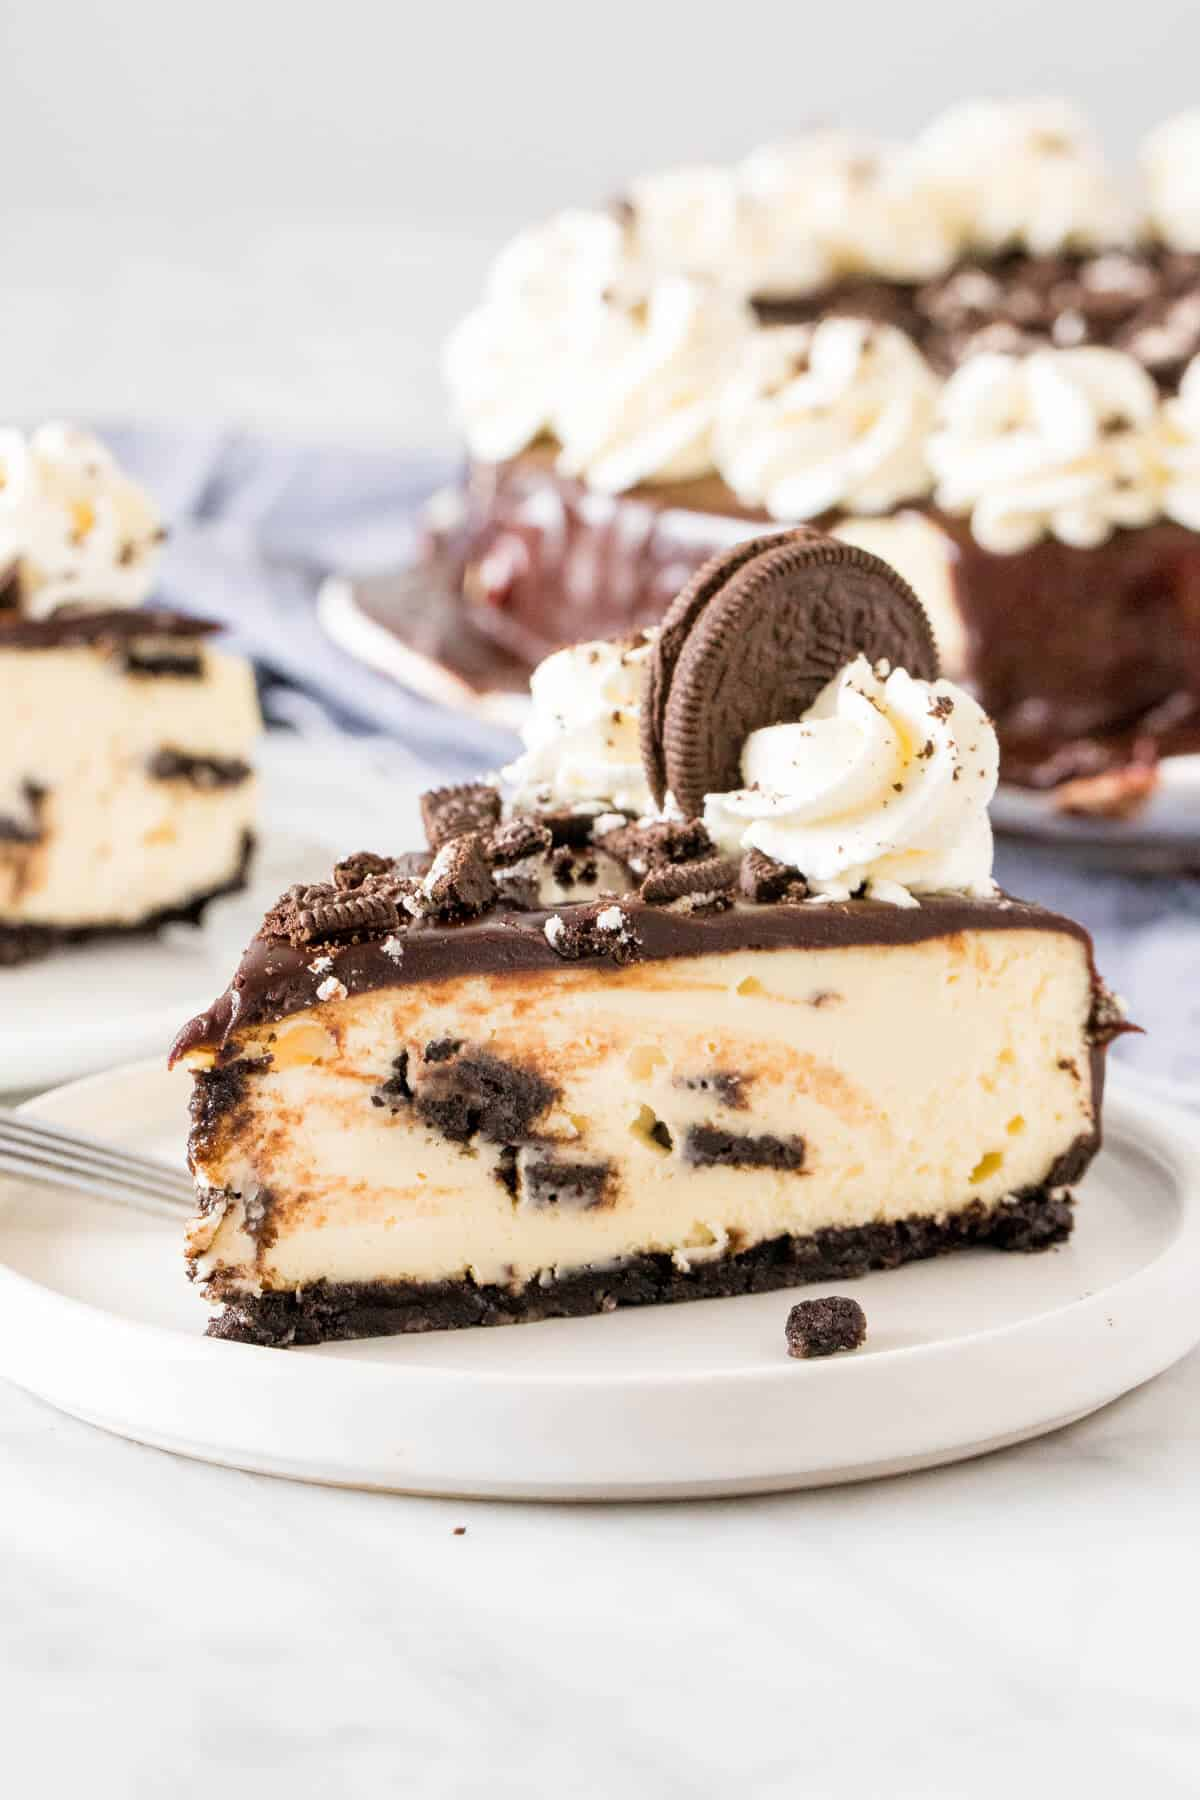 Slice of Oreo cheesecake with chocolate ganache and crushed Oreos on top.